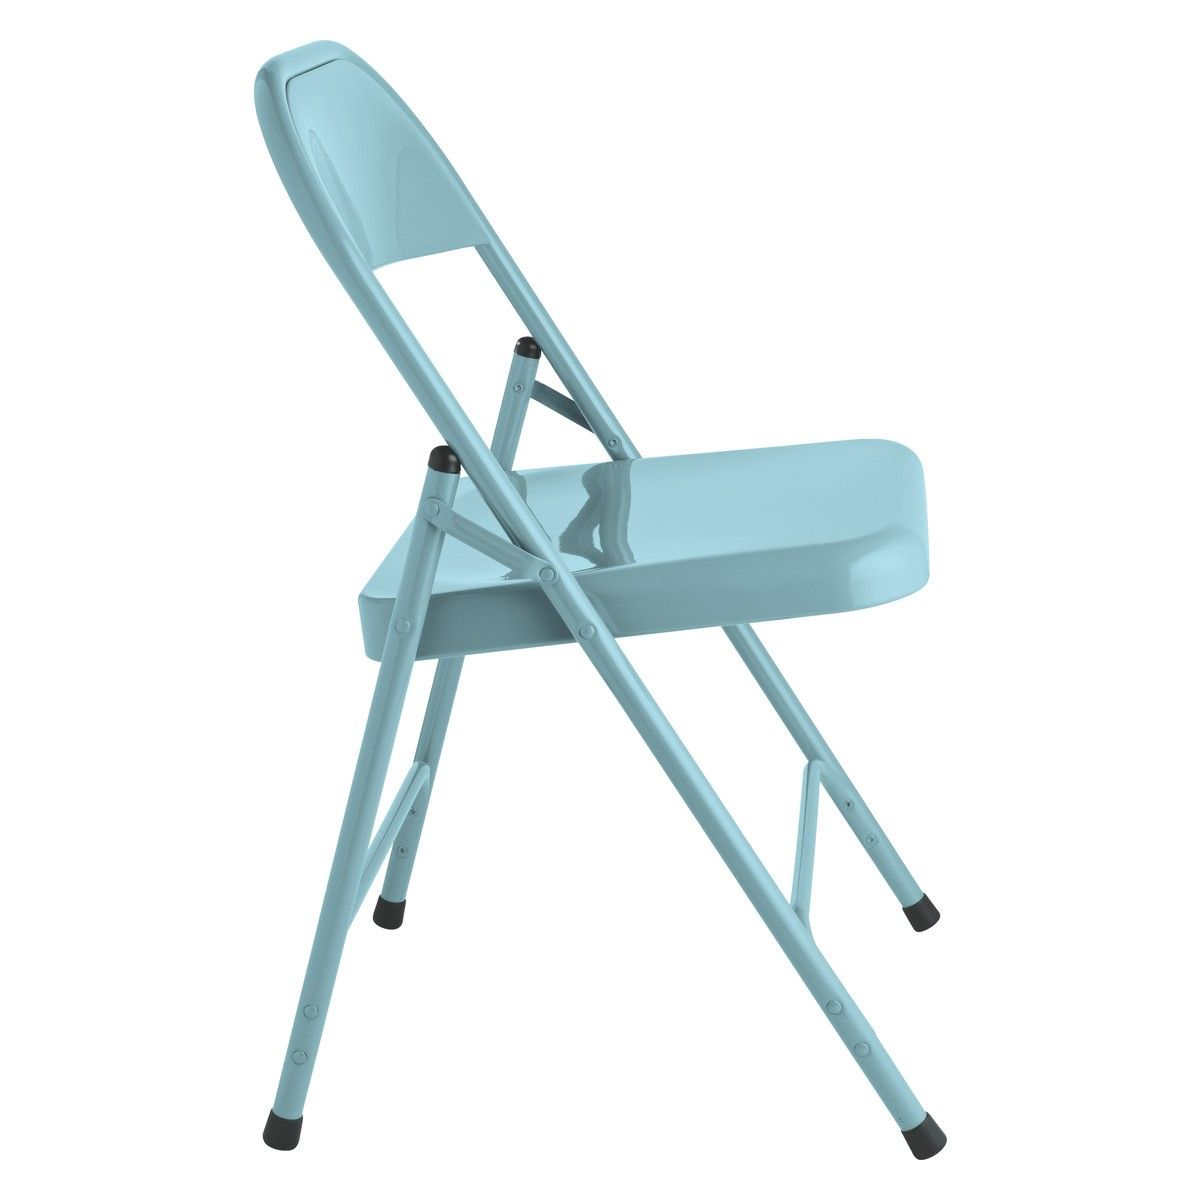 Blue Metal Folding Chairs Two Person Recliner Macadam Chair Sitting Room